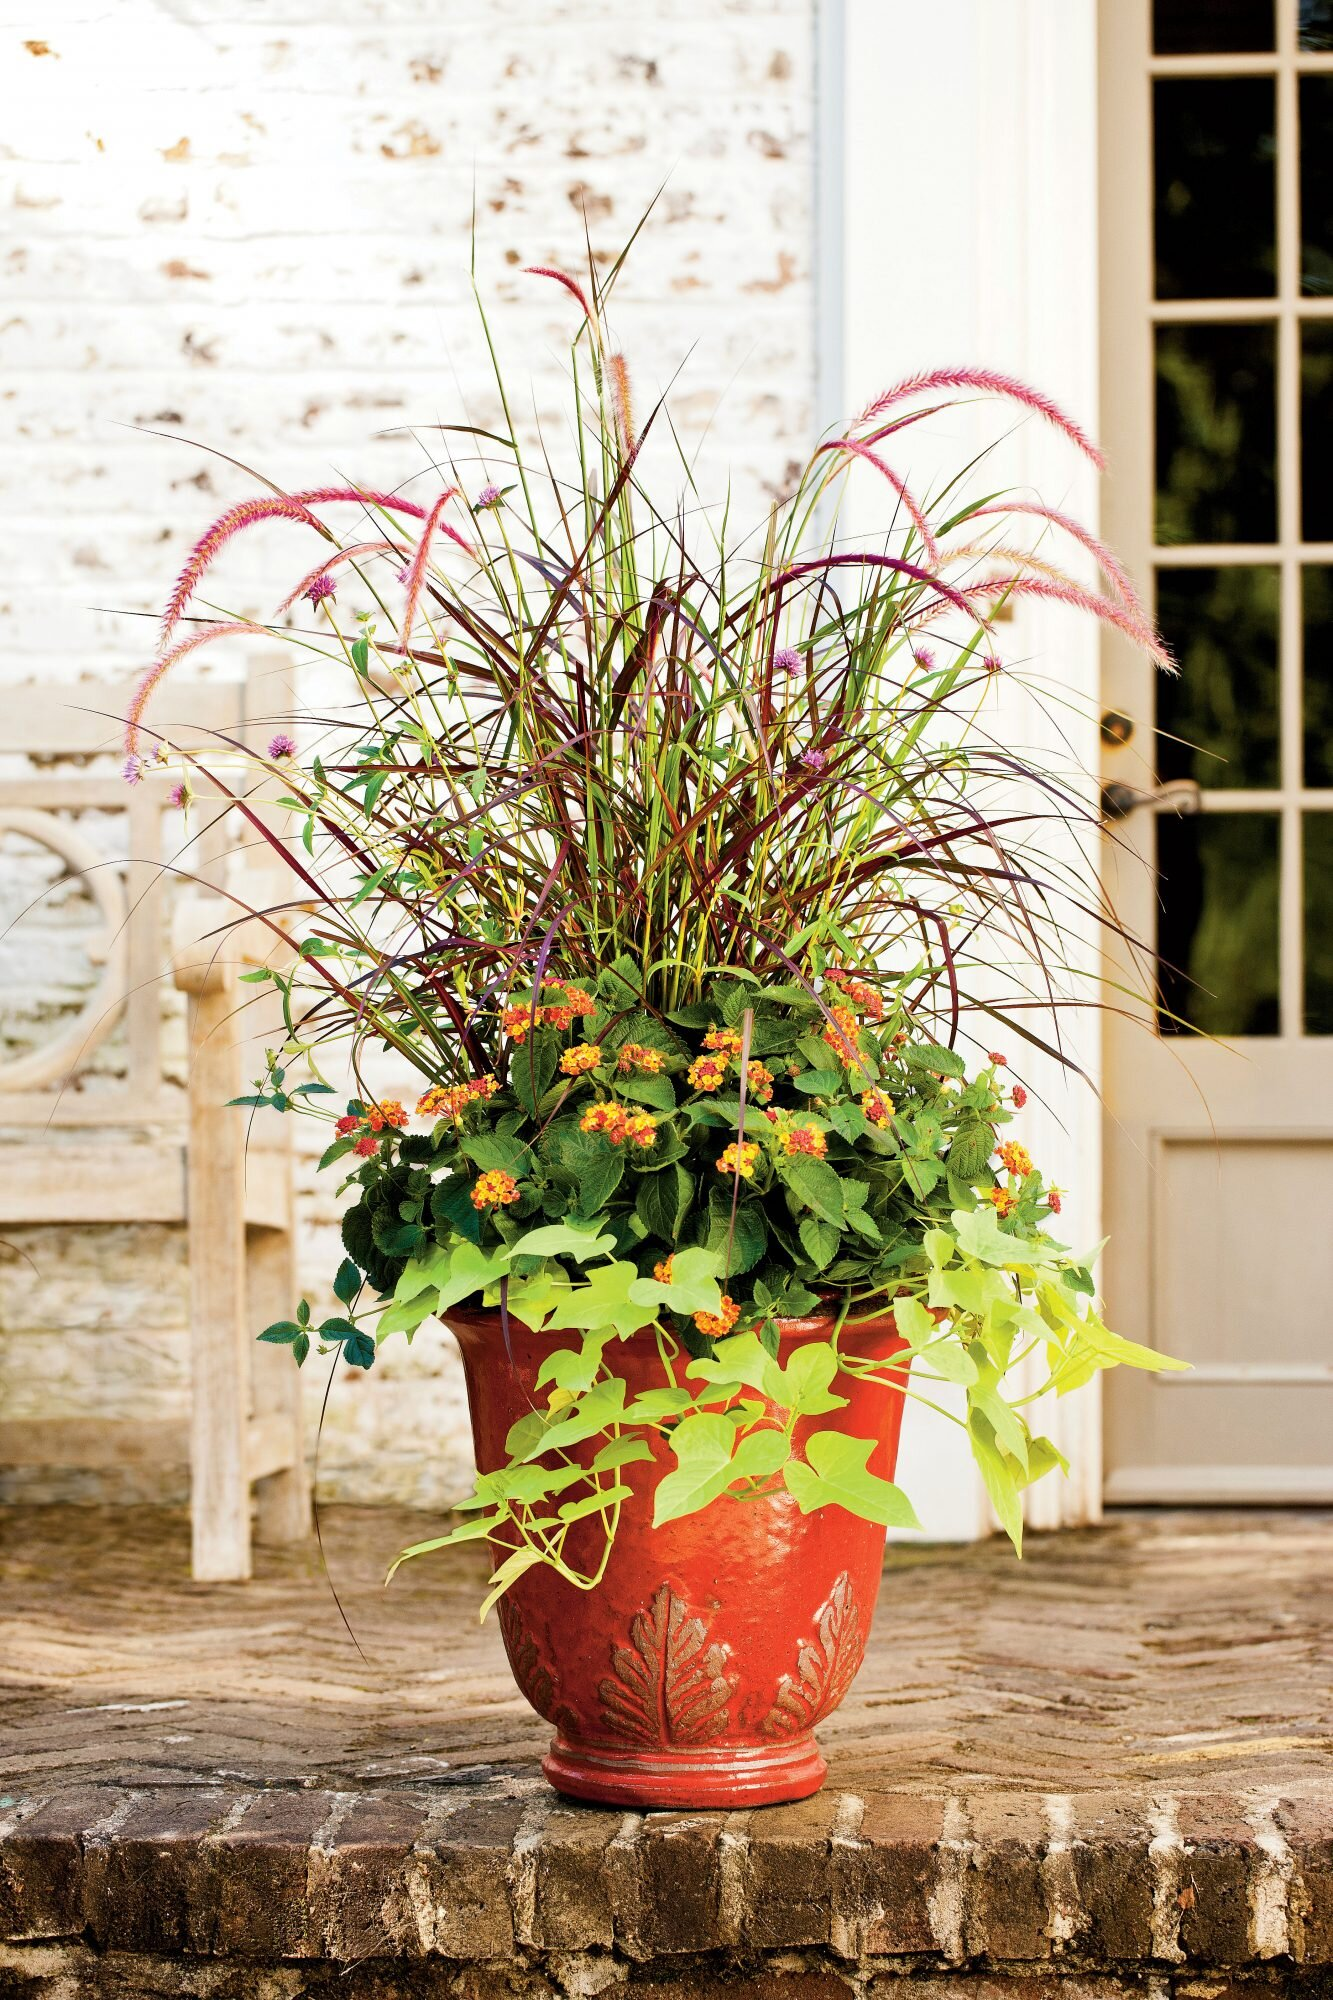 125 Container Gardening Ideas on backyard urn ideas, backyard patio ideas, cheap retaining wall ideas, backyard rose ideas, diy flower garden design ideas, backyard fence ideas, backyard gift ideas, tropical landscape patio design ideas, backyard outdoor ideas, backyard wood ideas, backyard landscaping ideas, back yard landscaping design ideas, backyard shelf ideas, small backyard ideas, outdoor flower pot decorating ideas, backyard plant ideas, backyard statue ideas, backyard bed ideas, backyard light ideas, backyard flowers ideas,